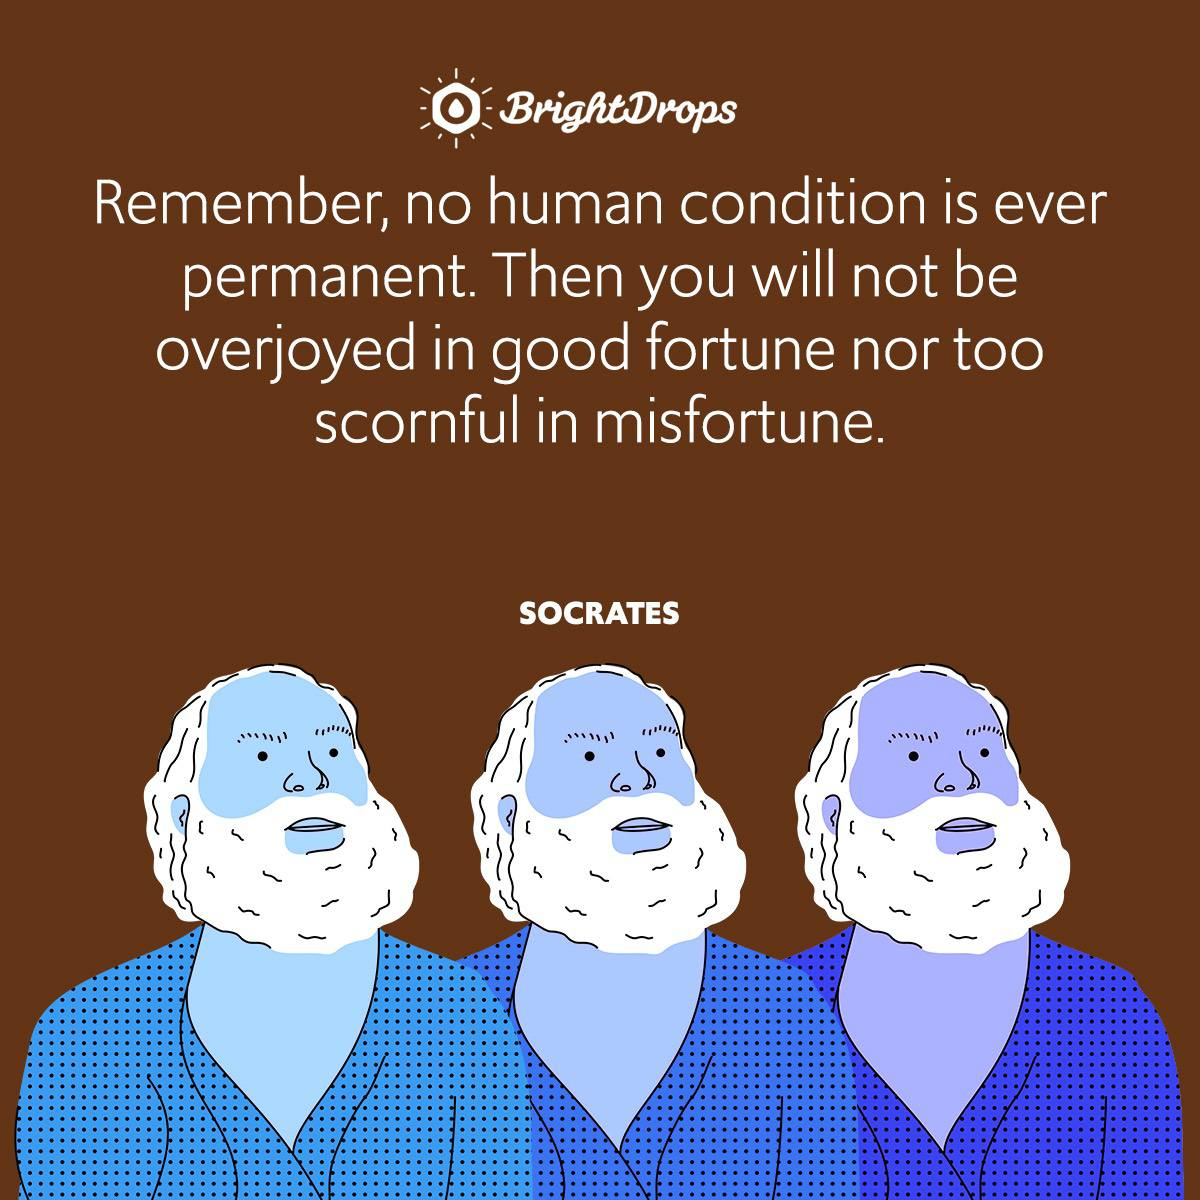 Remember, no human condition is ever permanent. Then you will not be overjoyed in good fortune nor too scornful in misfortune.